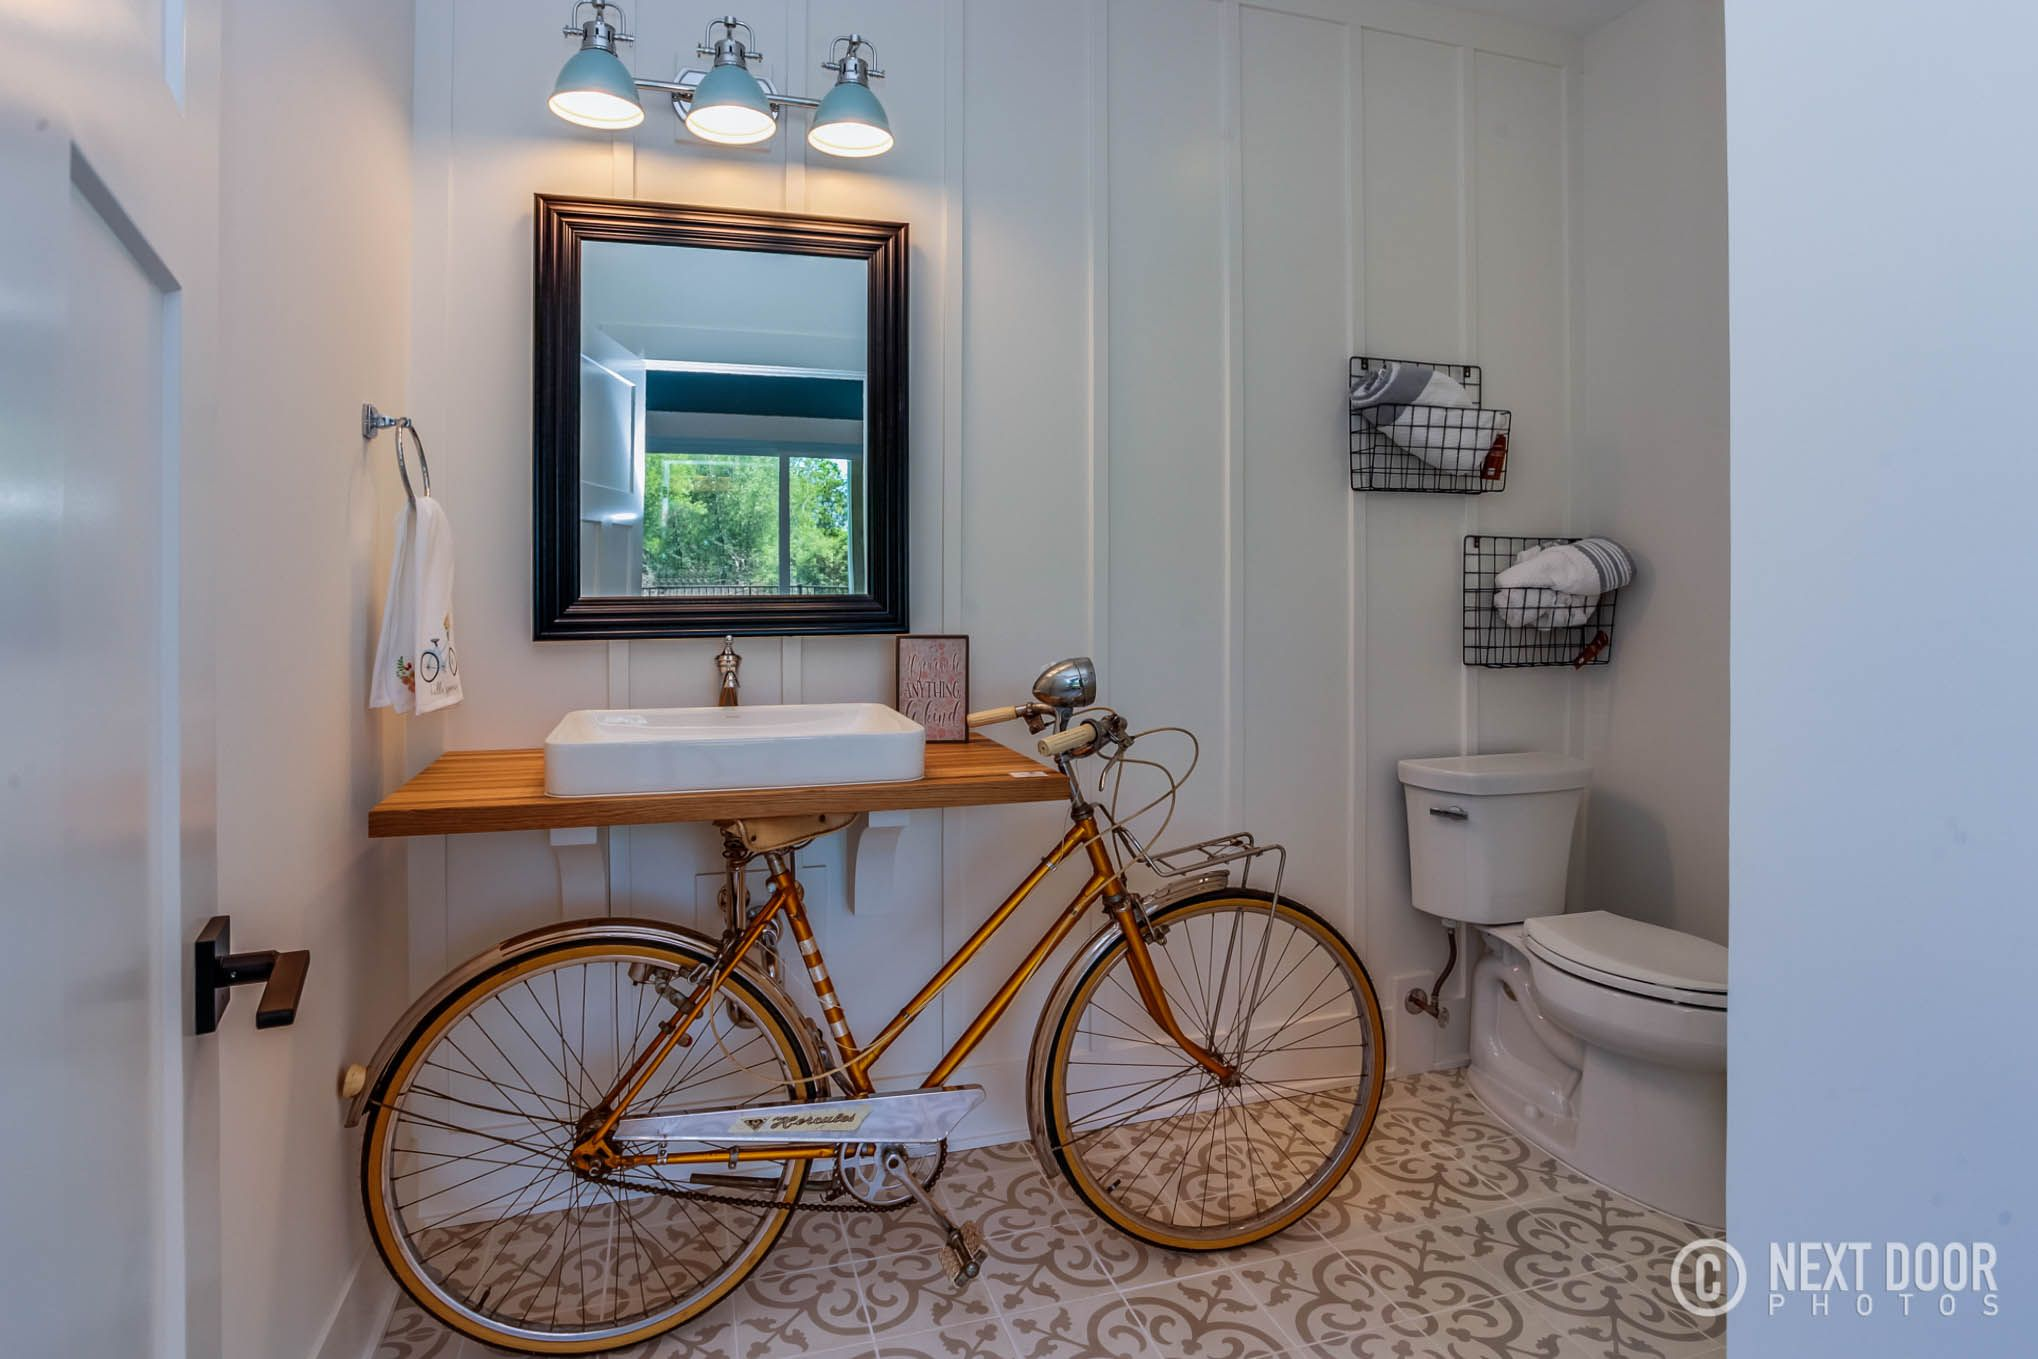 Bicycle Sink By 56 West Homes Design Unique Bathroom Sinks Bicycle Sink Unique Bathroom